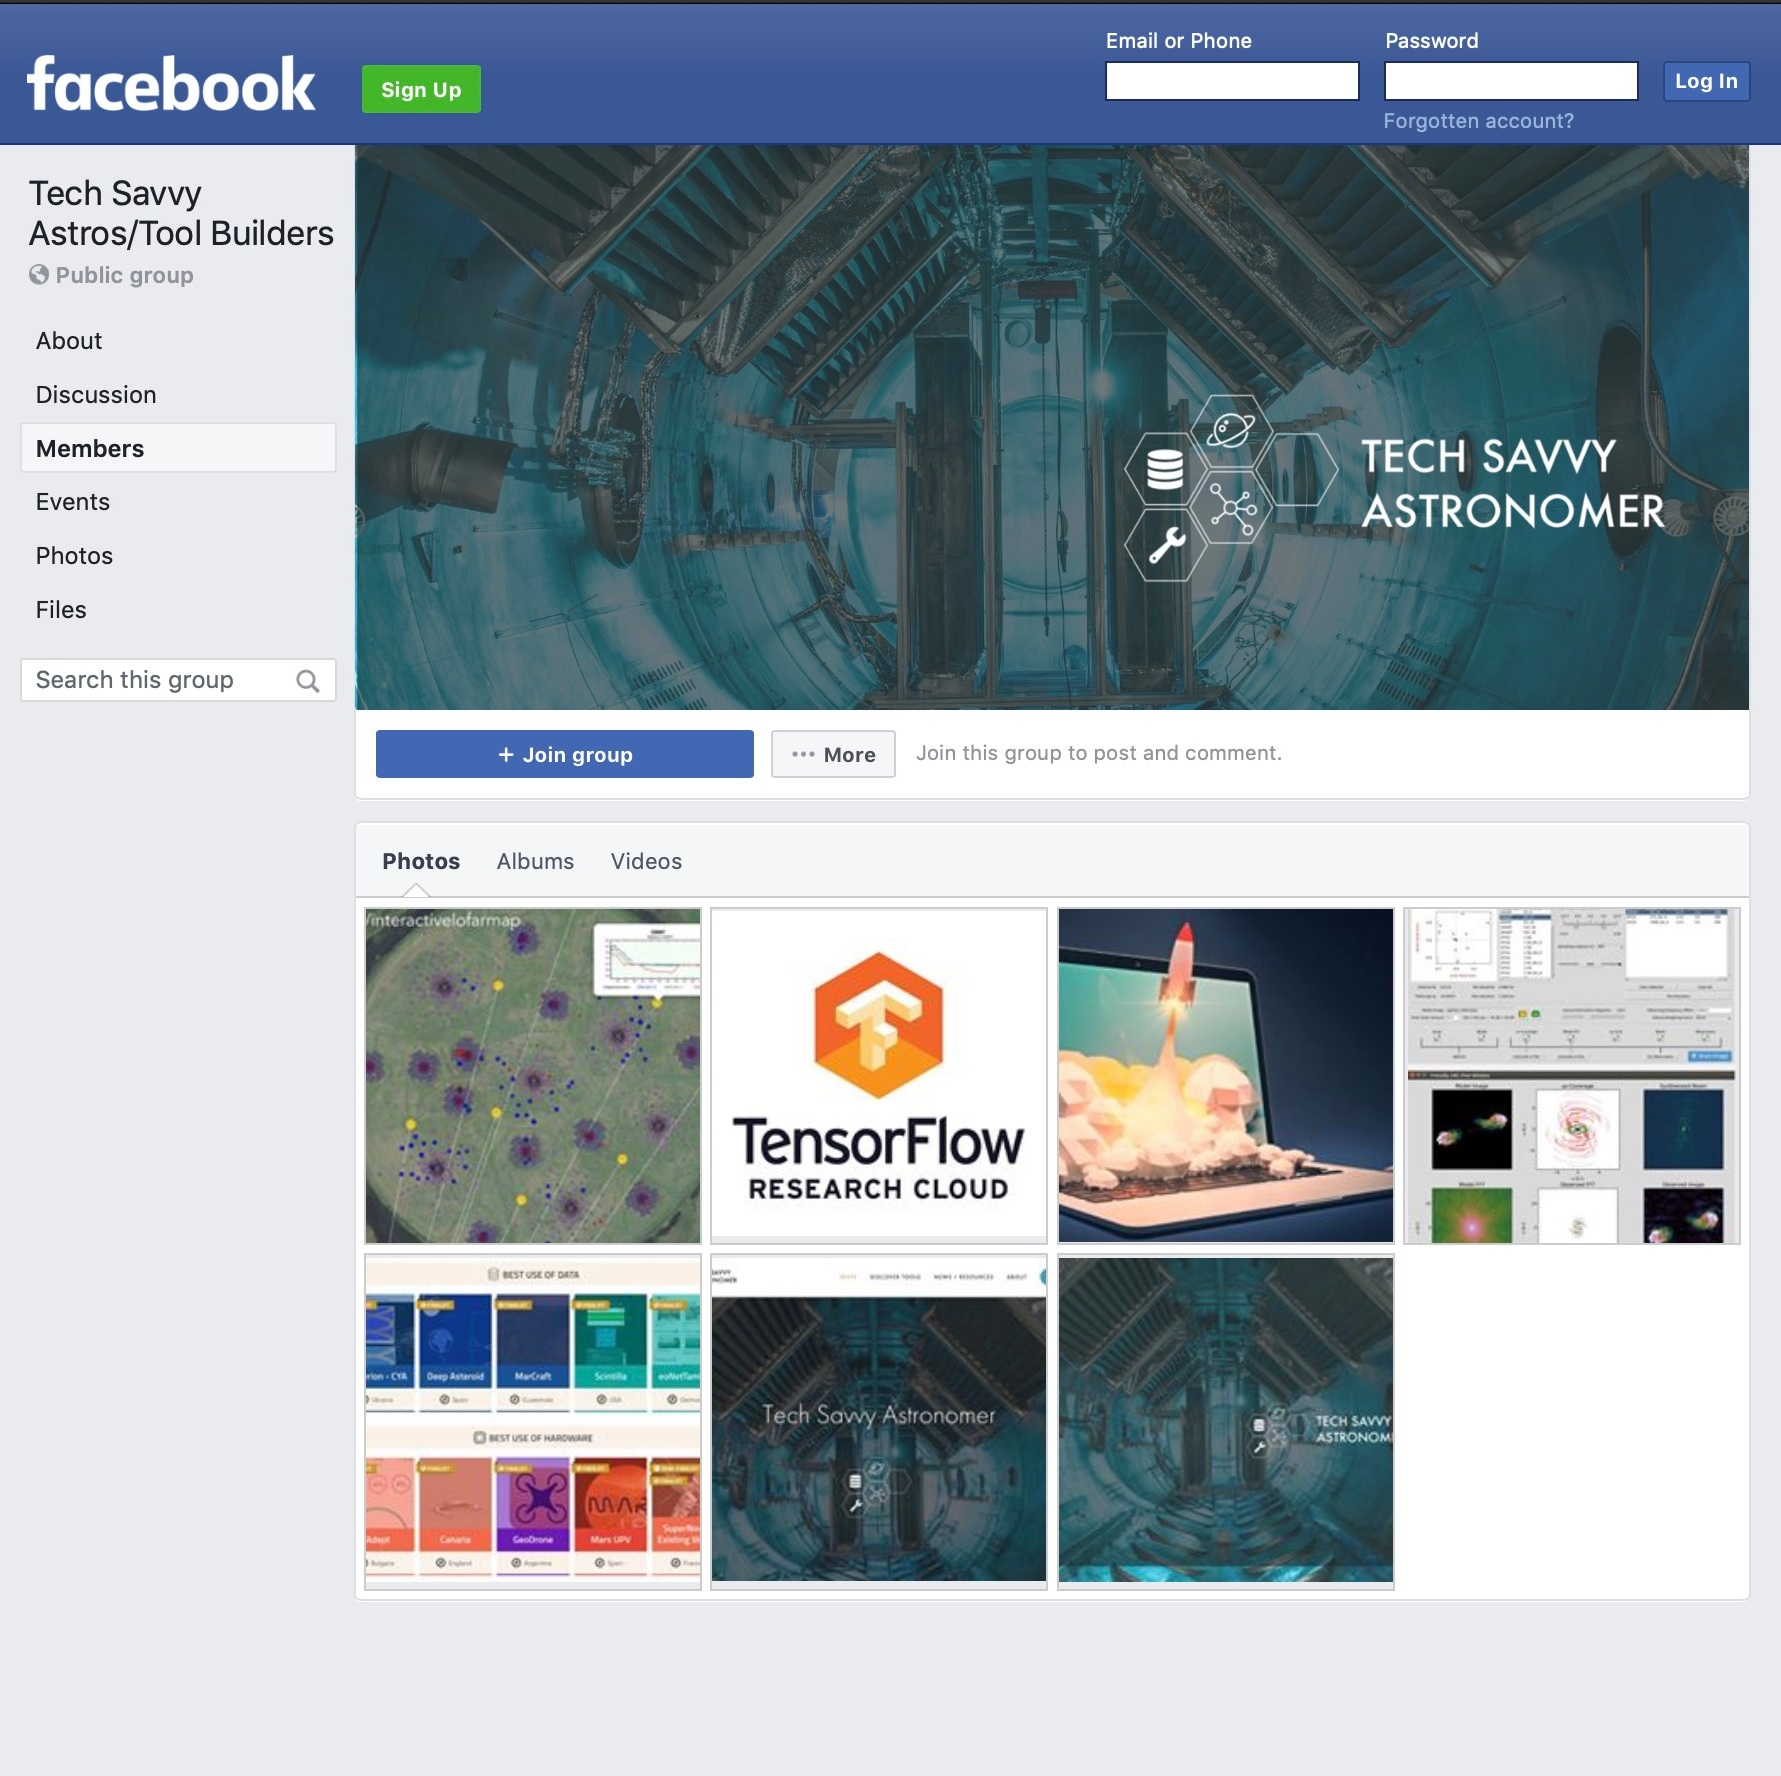 The  Tech Savvy Astros/Tool Builders  Facebook group provides a forum for discussions around community developed tools for astrophysics research (and scientific research more broadly), useful tools for transitioning into data science and tech, web development and outreach tools, tech skills training, emerging technologies, astronomy start-ups, and freelance work.